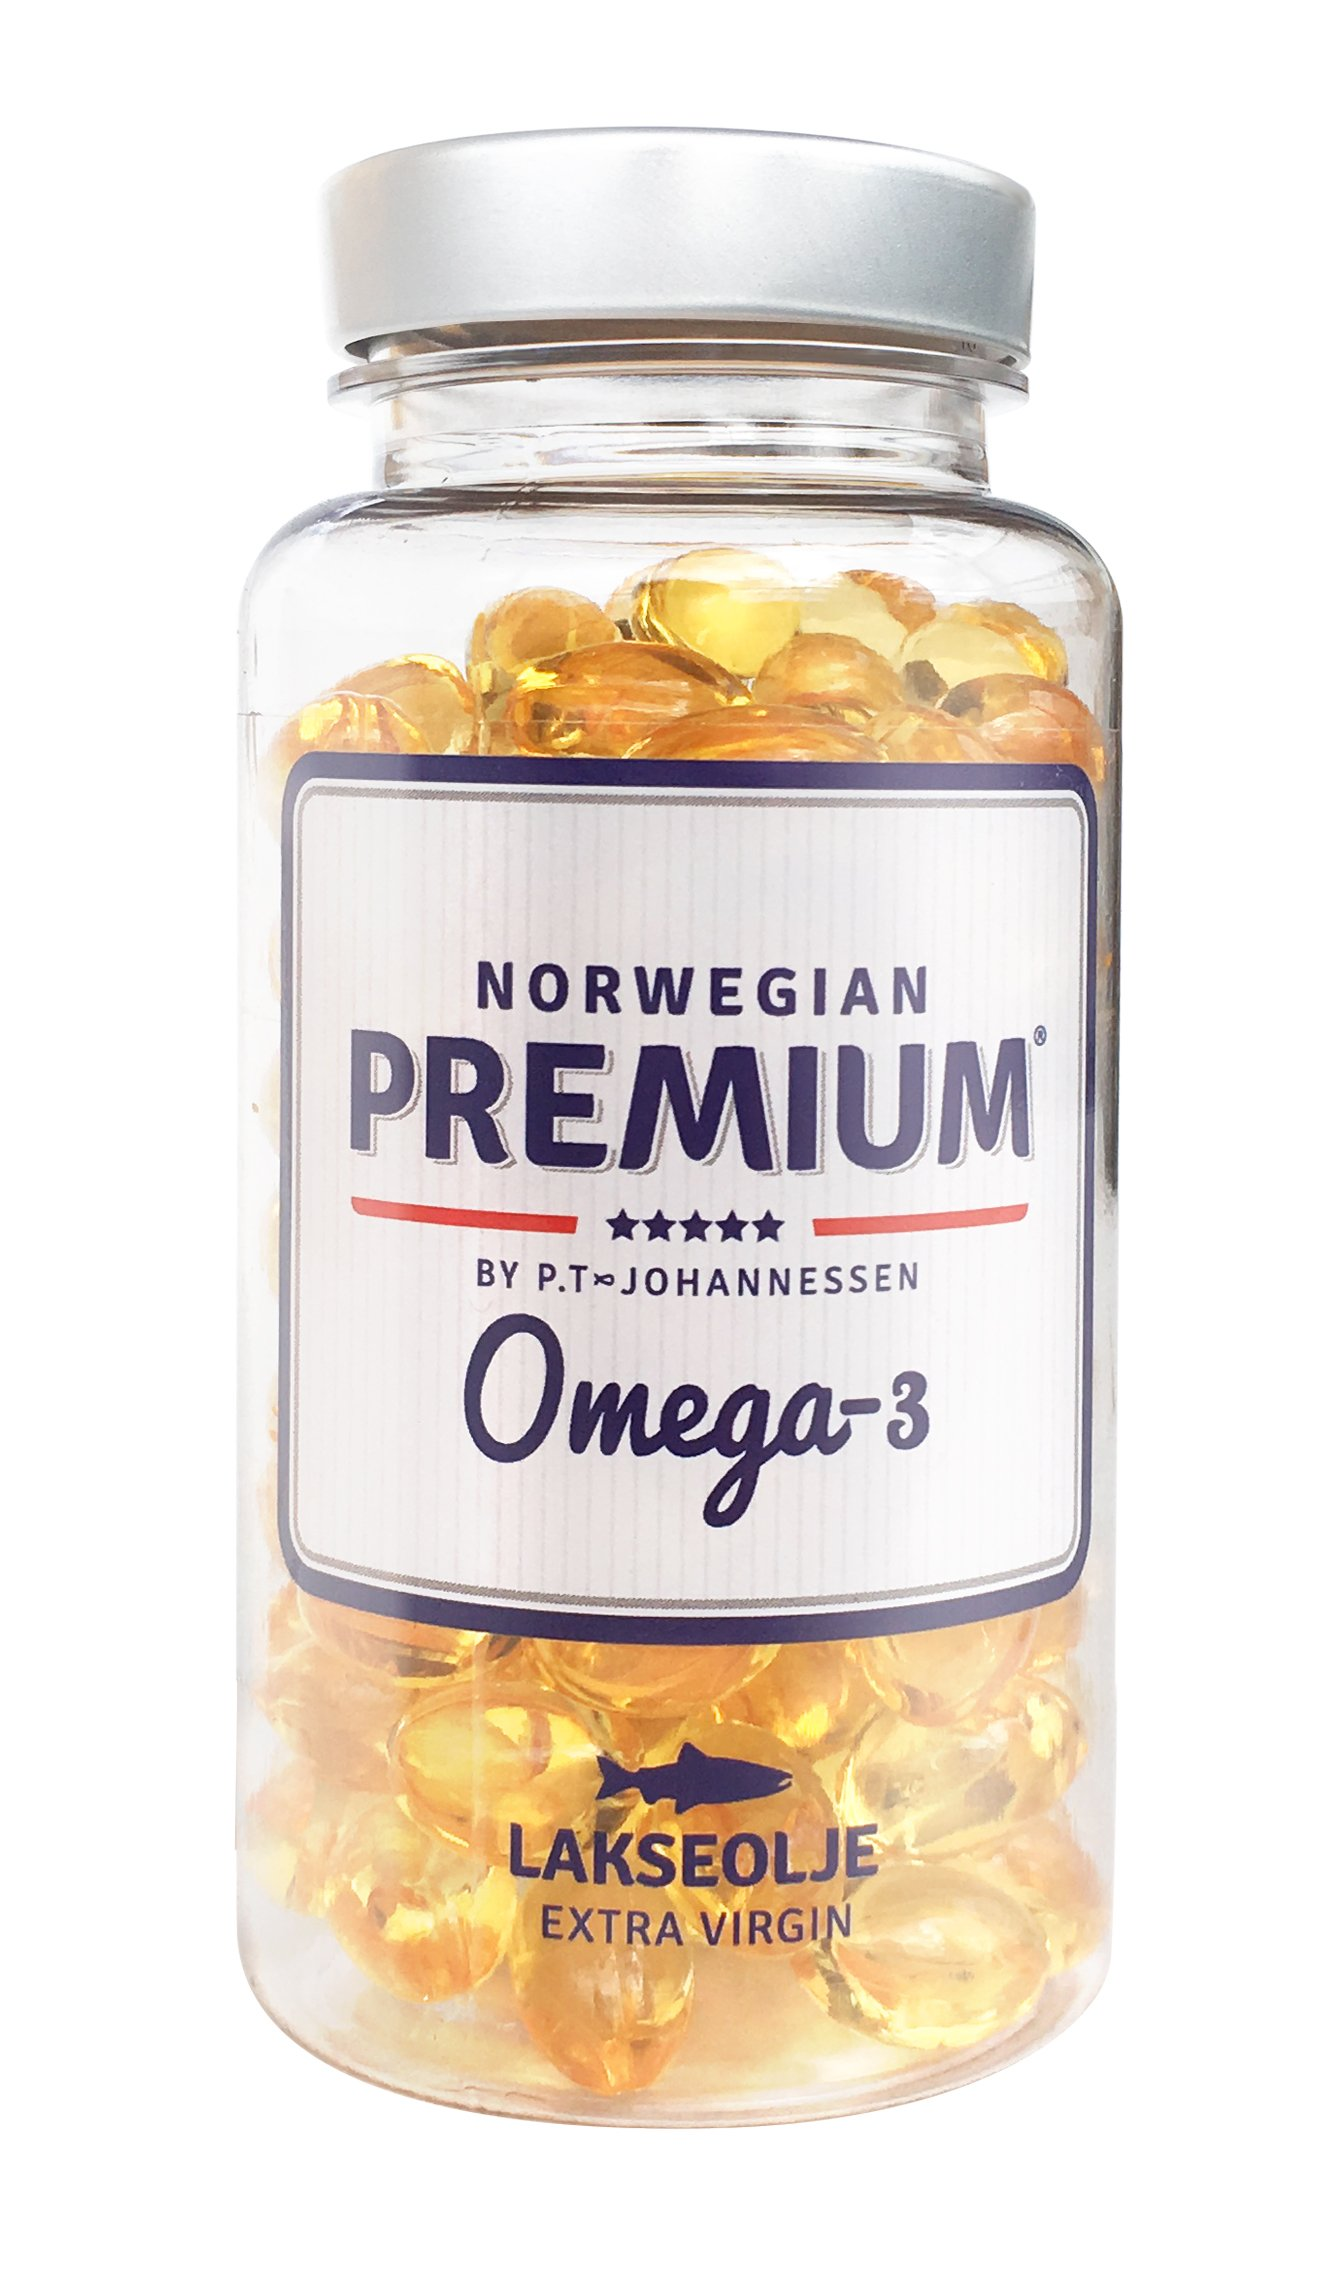 Norwegian Premium Omega-3 by P.T-Johannessen Salmon Fish Extra Virgin not from Concentrate burpless Oil. Made in Norway. (120 Capsules)